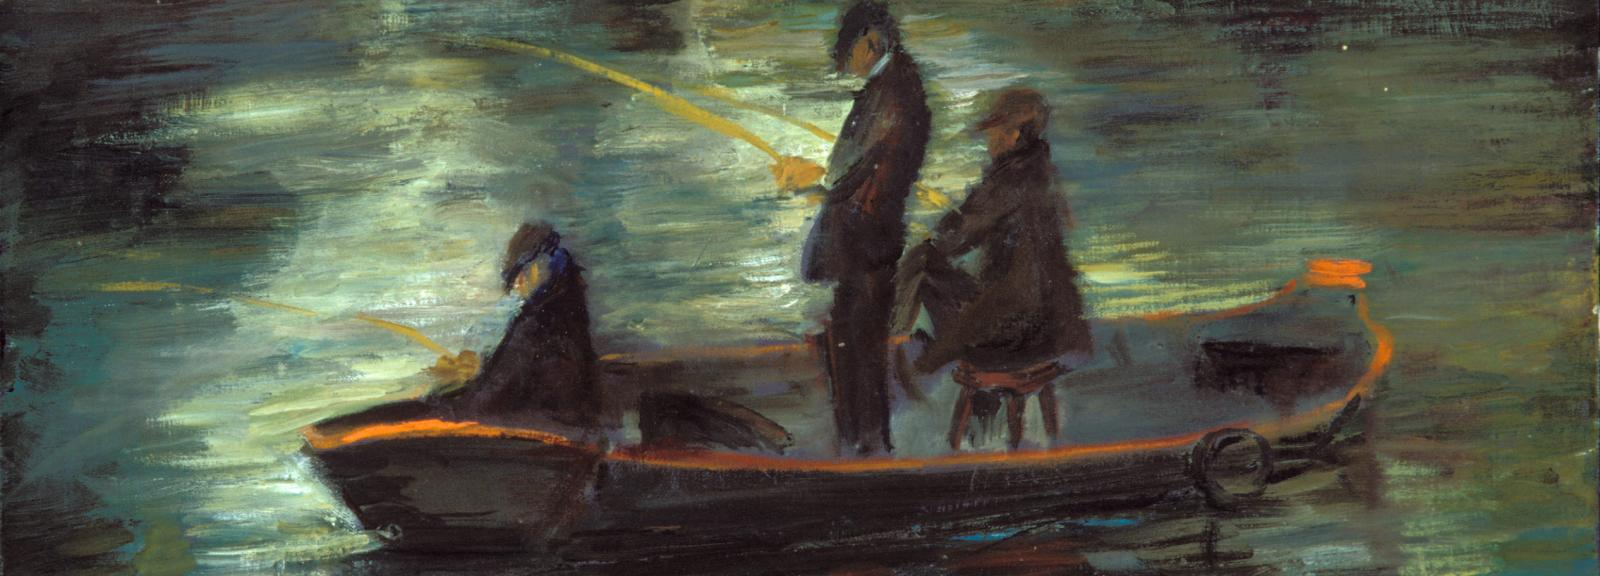 Moya Dyring, Fisherman c.1966, oil on canvas, 38.1 x 60.9 cm, Heide Museum of Modern Art, Bequest of John and Sunday Reed 1982, © Estate of Judith Innes Irons